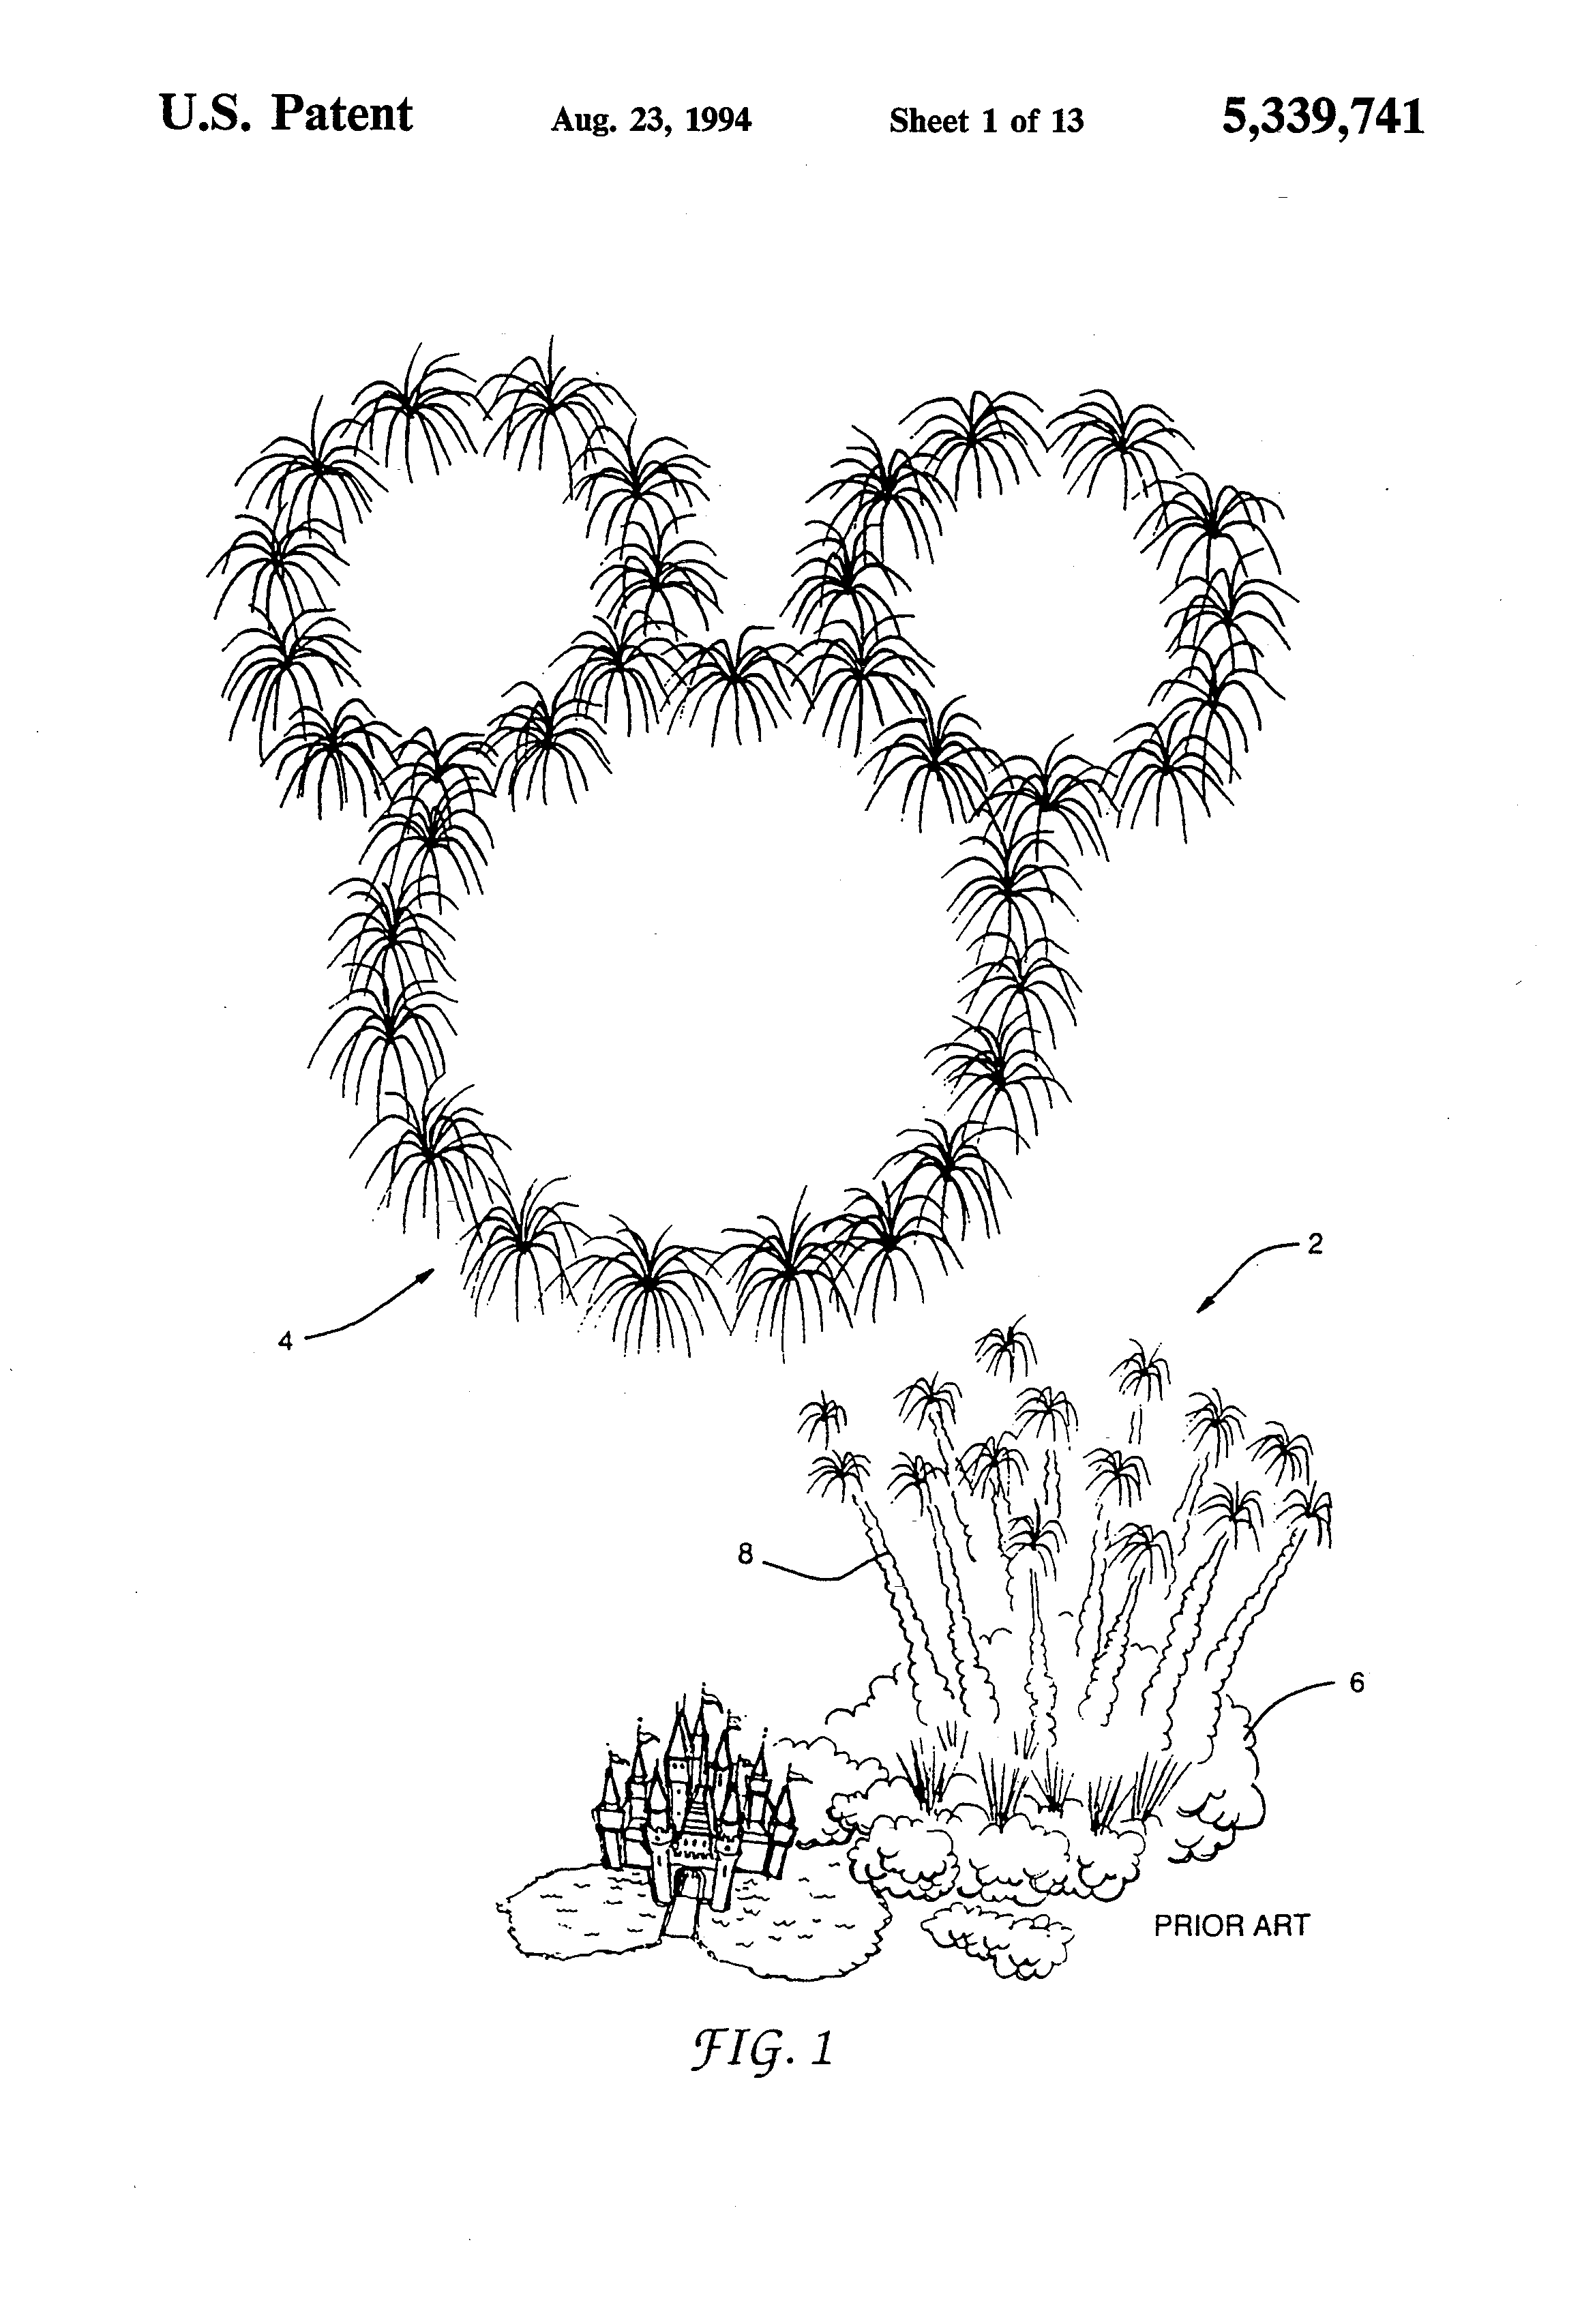 Precision Fireworks Display System Having a Decreased Environmental Impact Patent